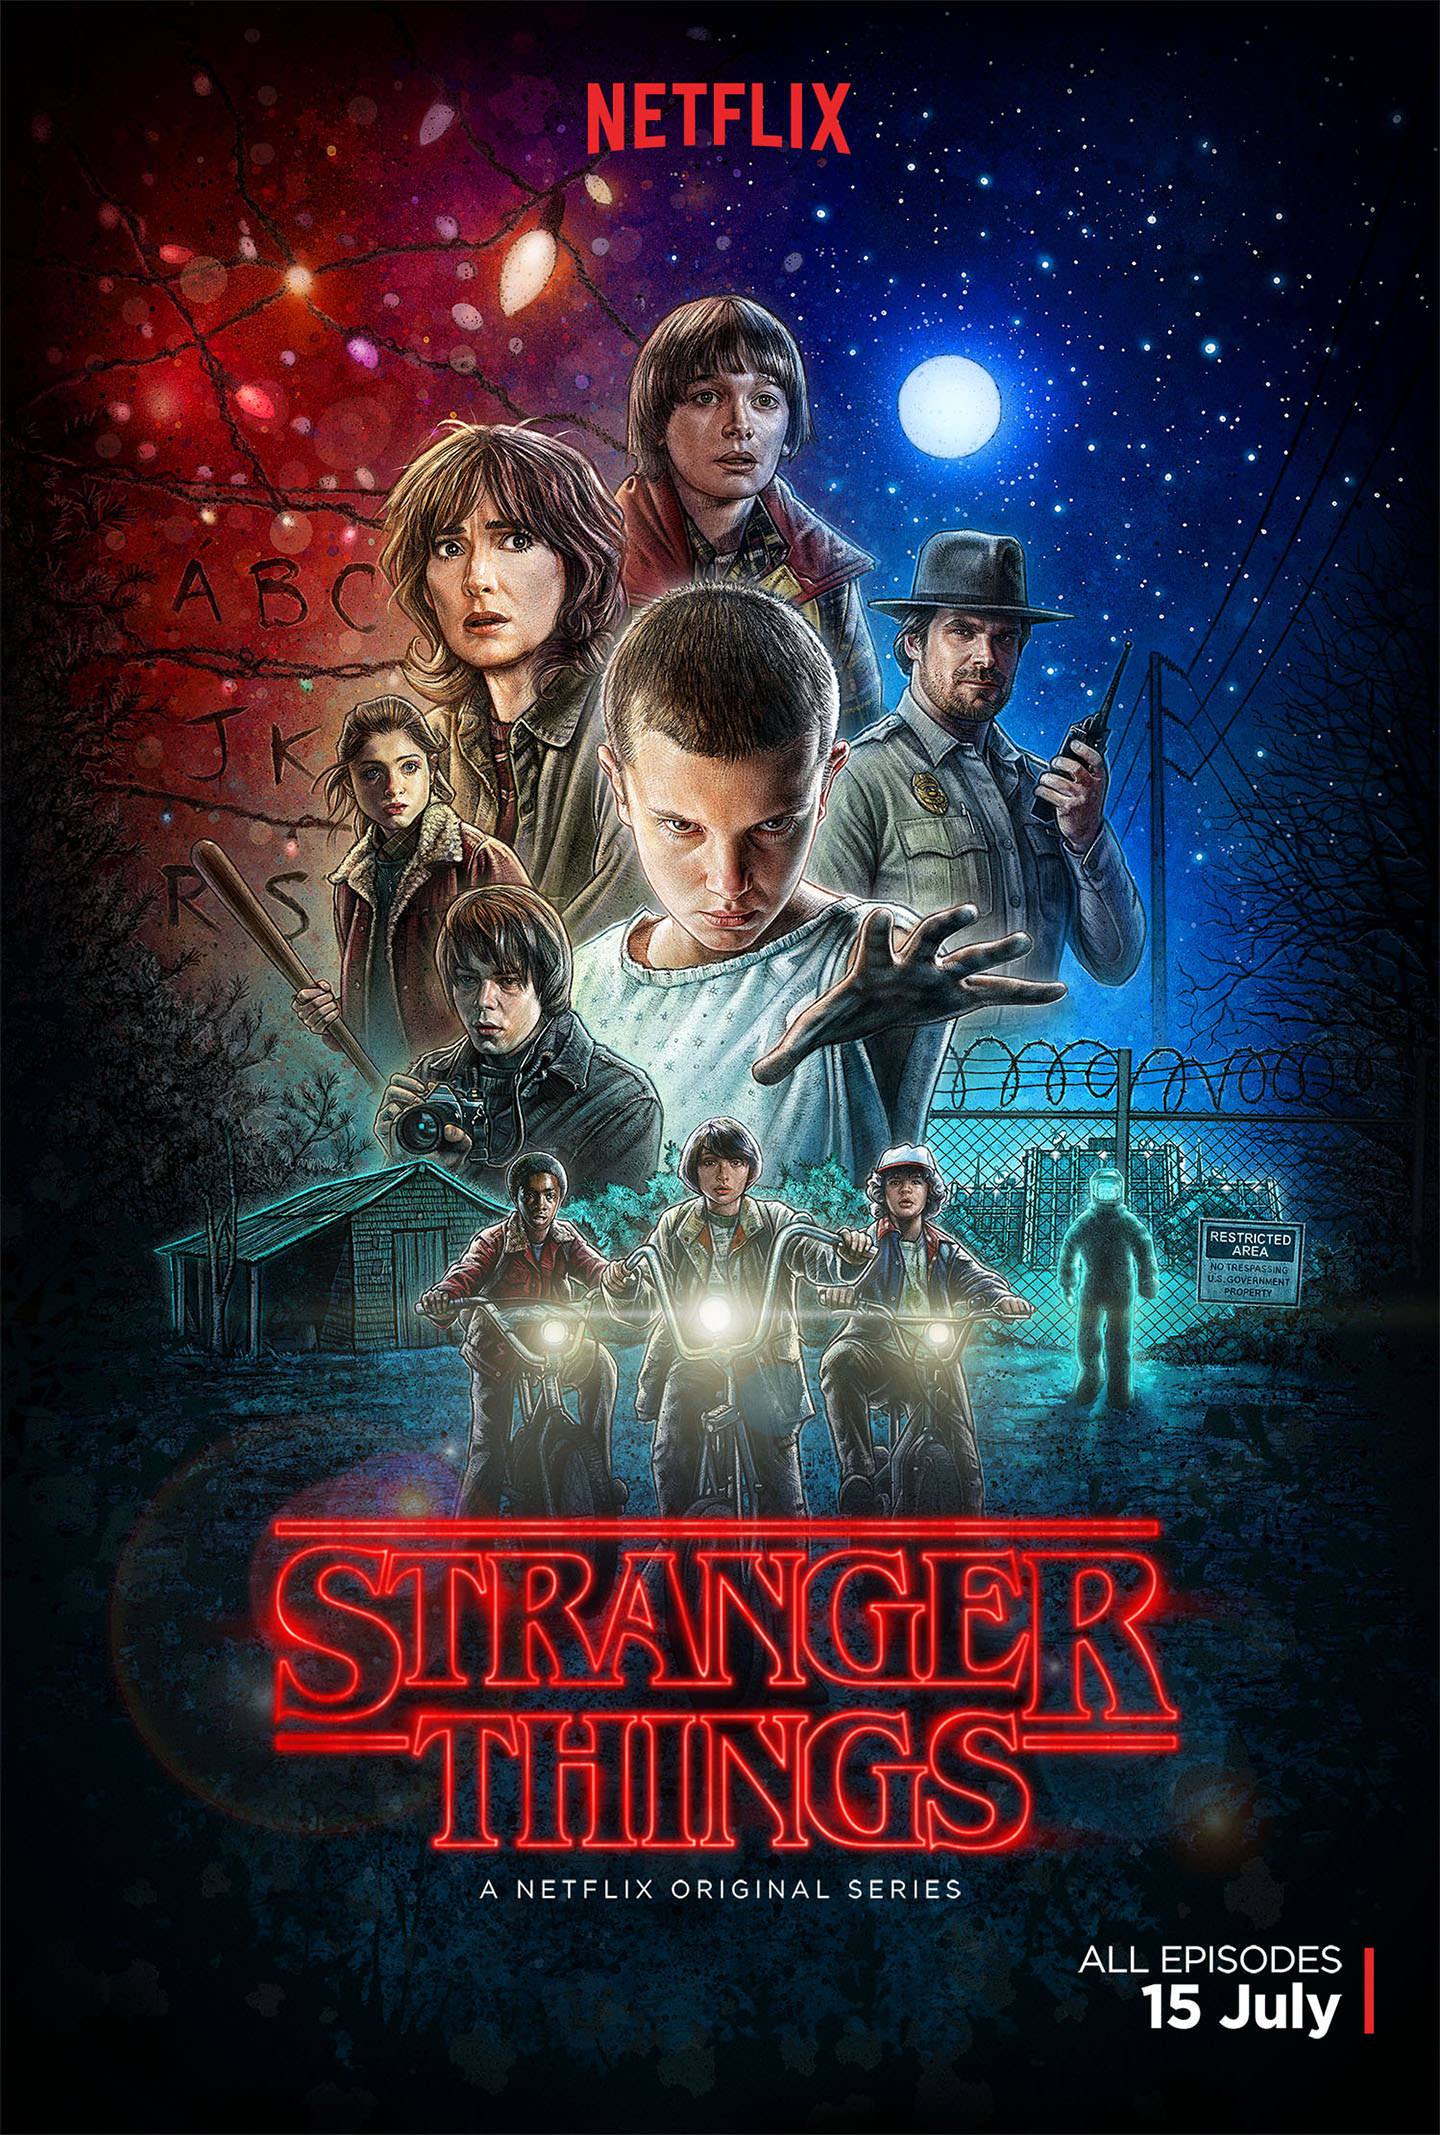 Blog-Mode-And-The-City-Lifestyle-Cinq-petites-Choses-185-stranger-things